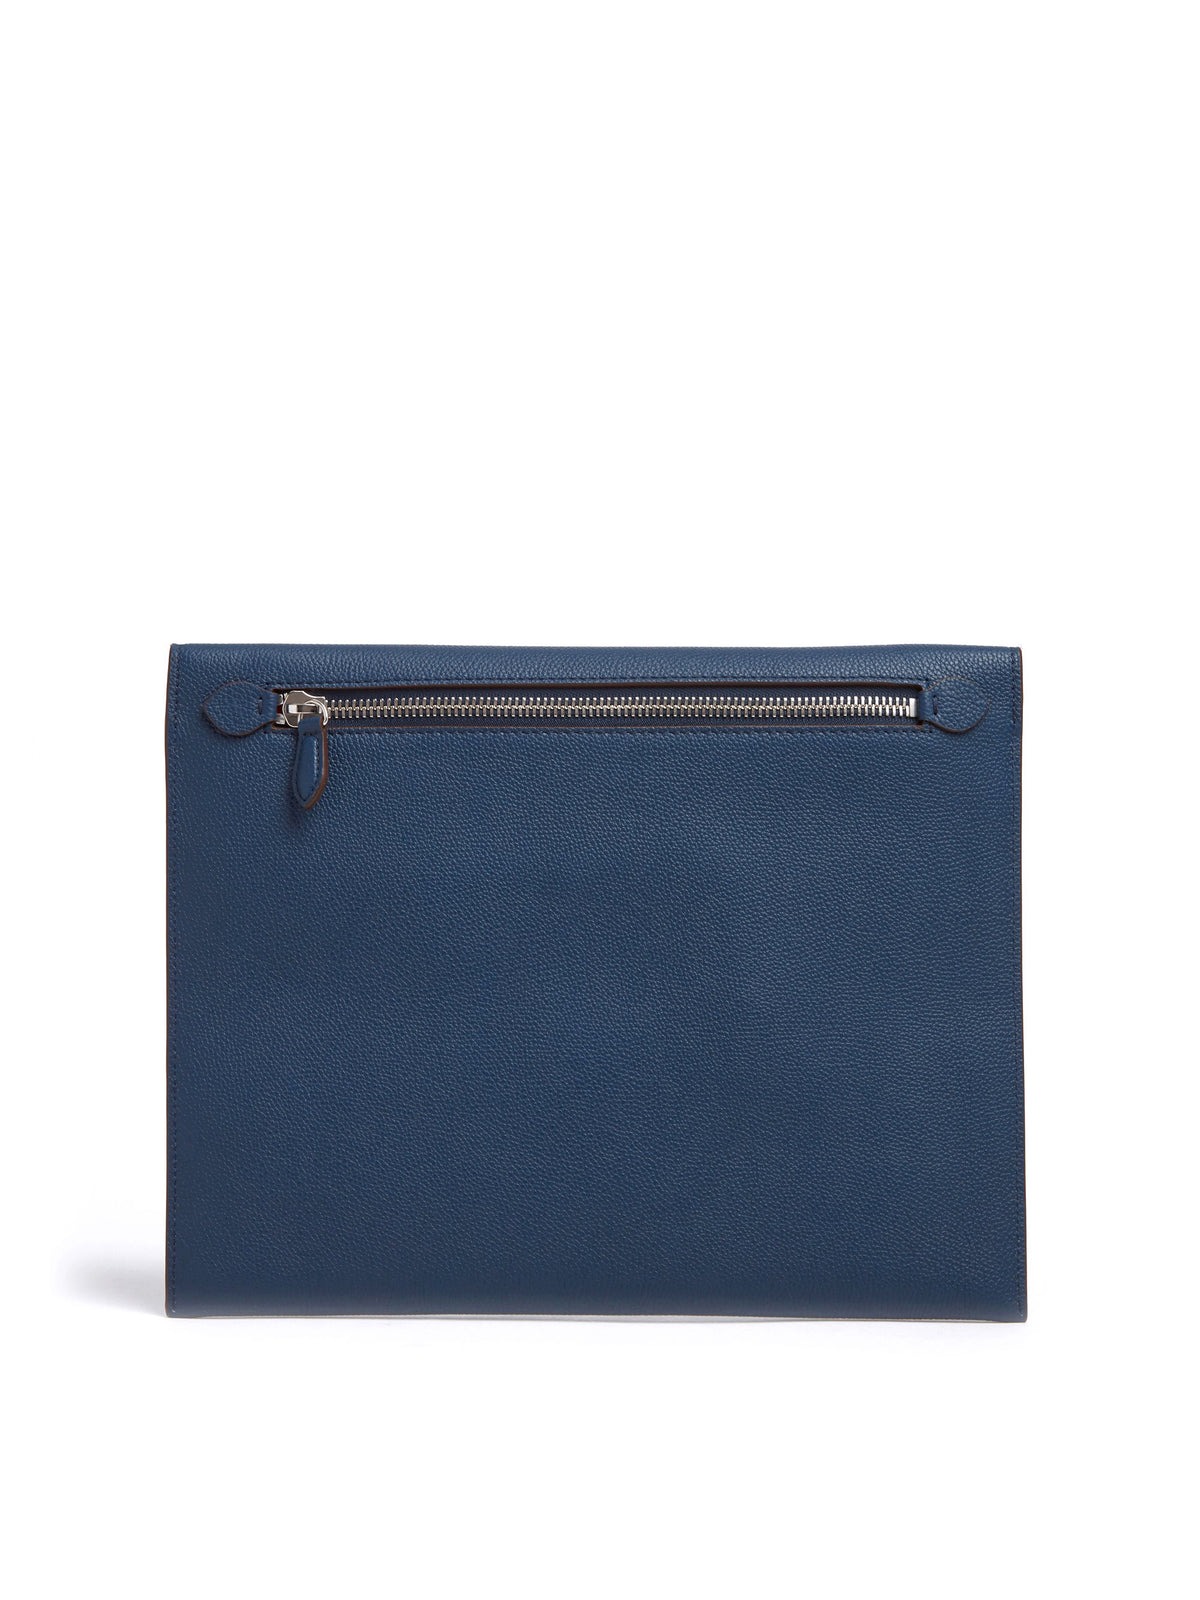 Mark Cross Diver Leather Folio Tumbled Grain Navy Back